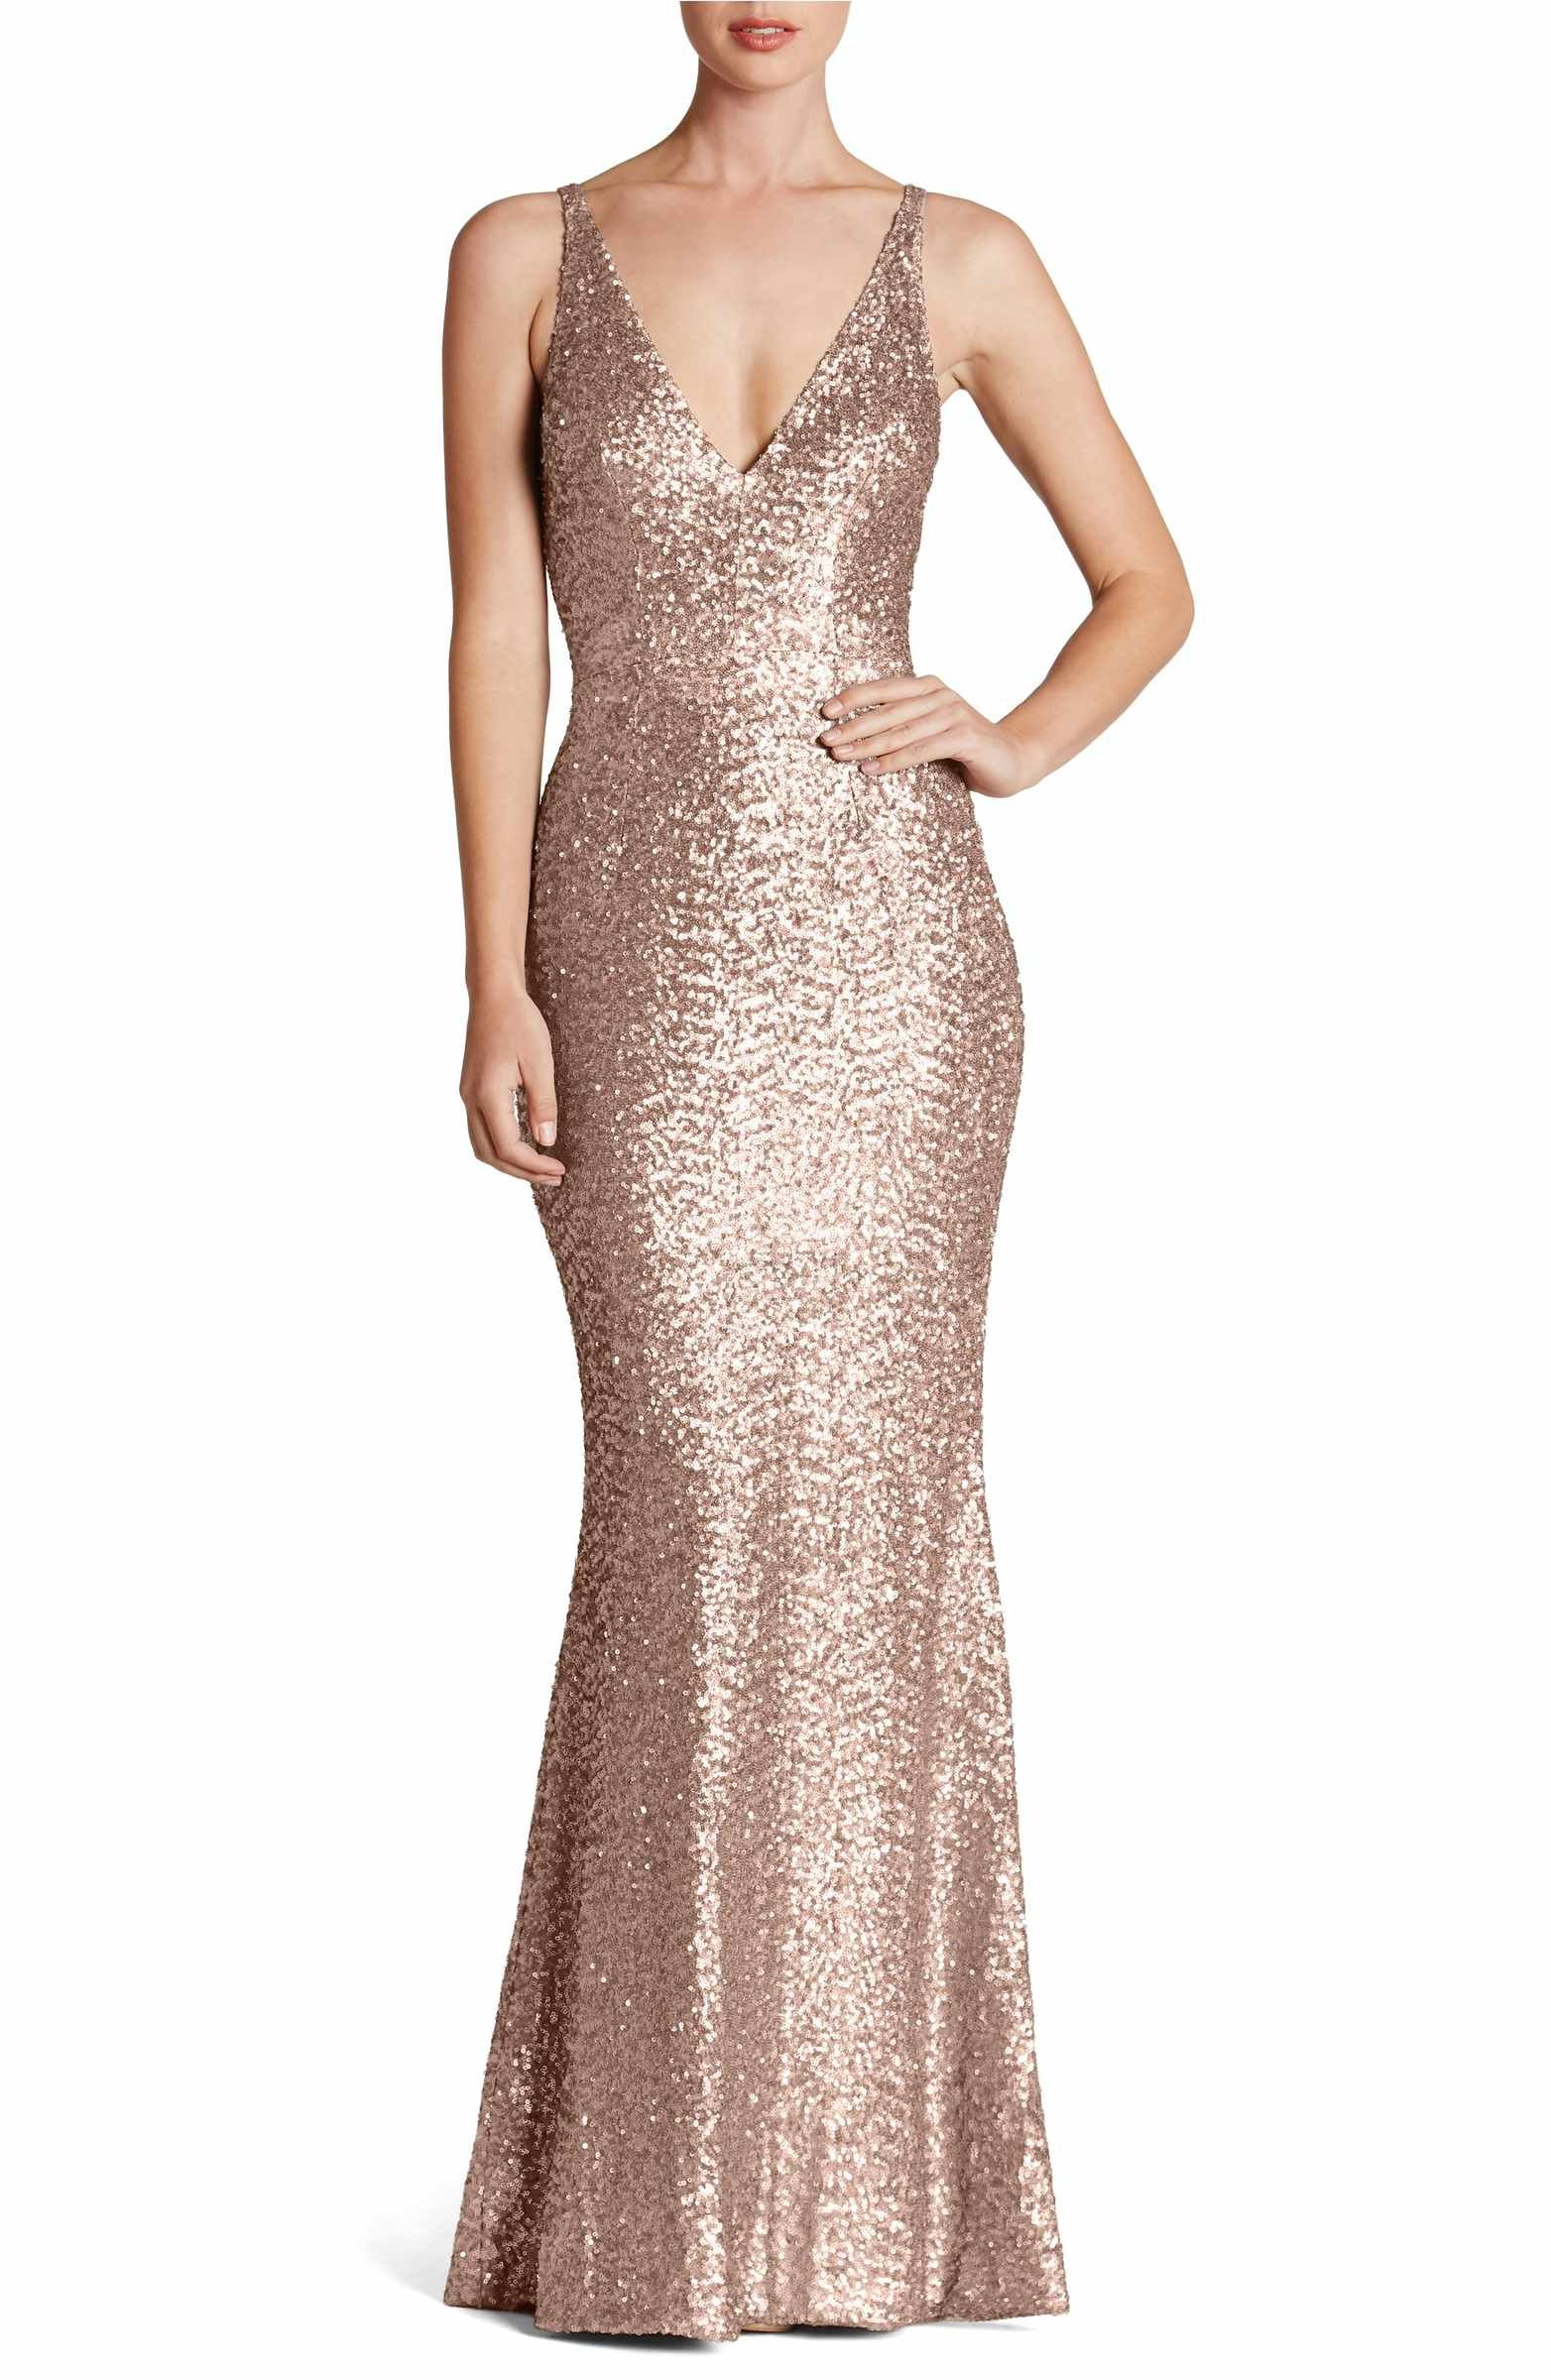 Main image dress the population harper mermaid gown formal